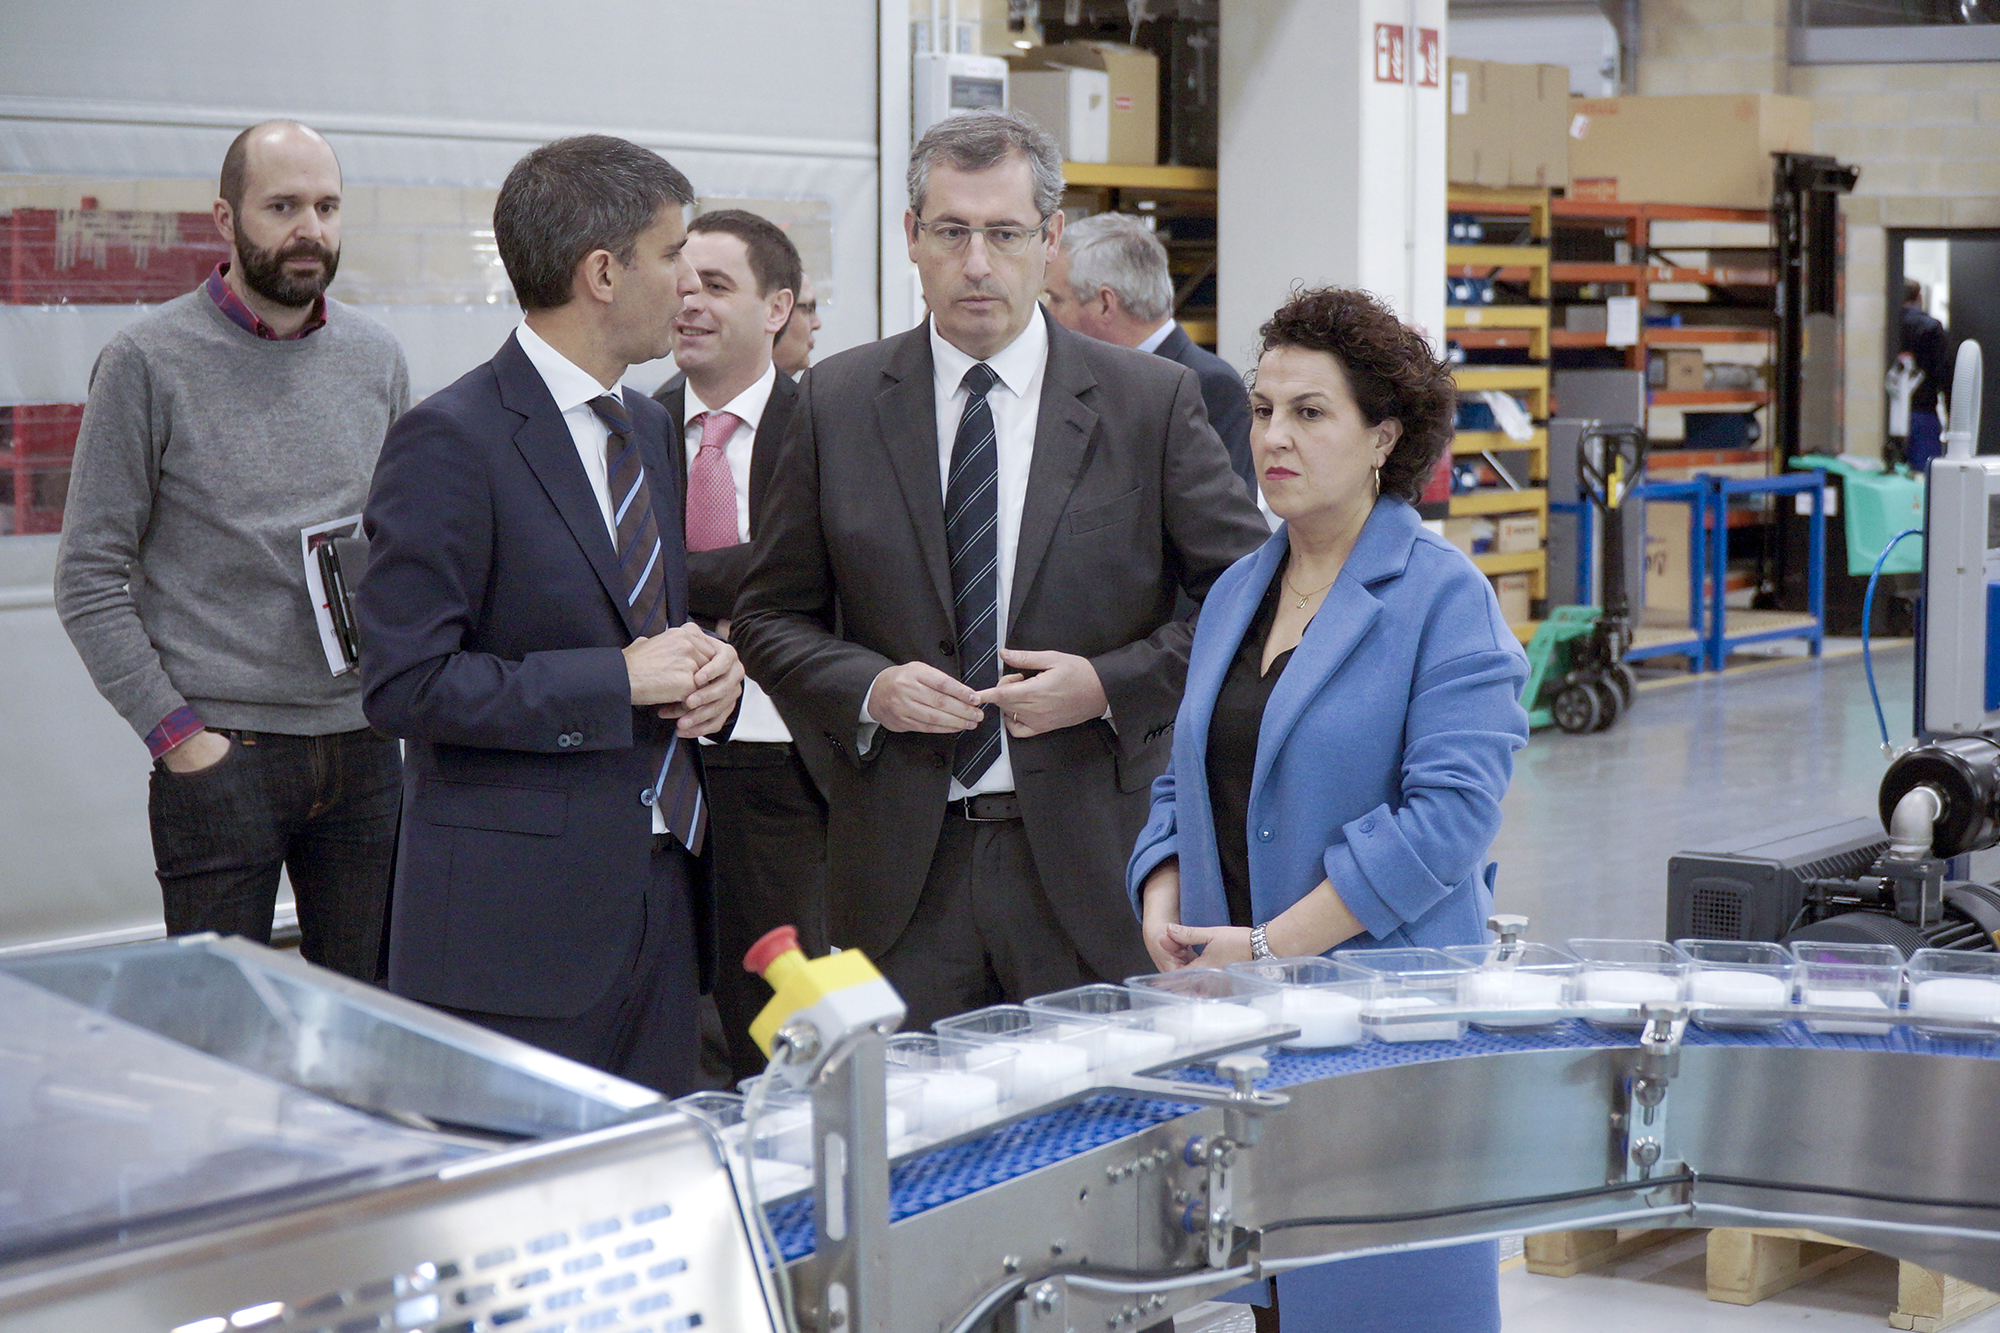 ULMA Packaging opens a new plant for its traysealing activity in Goribar (Oñati)